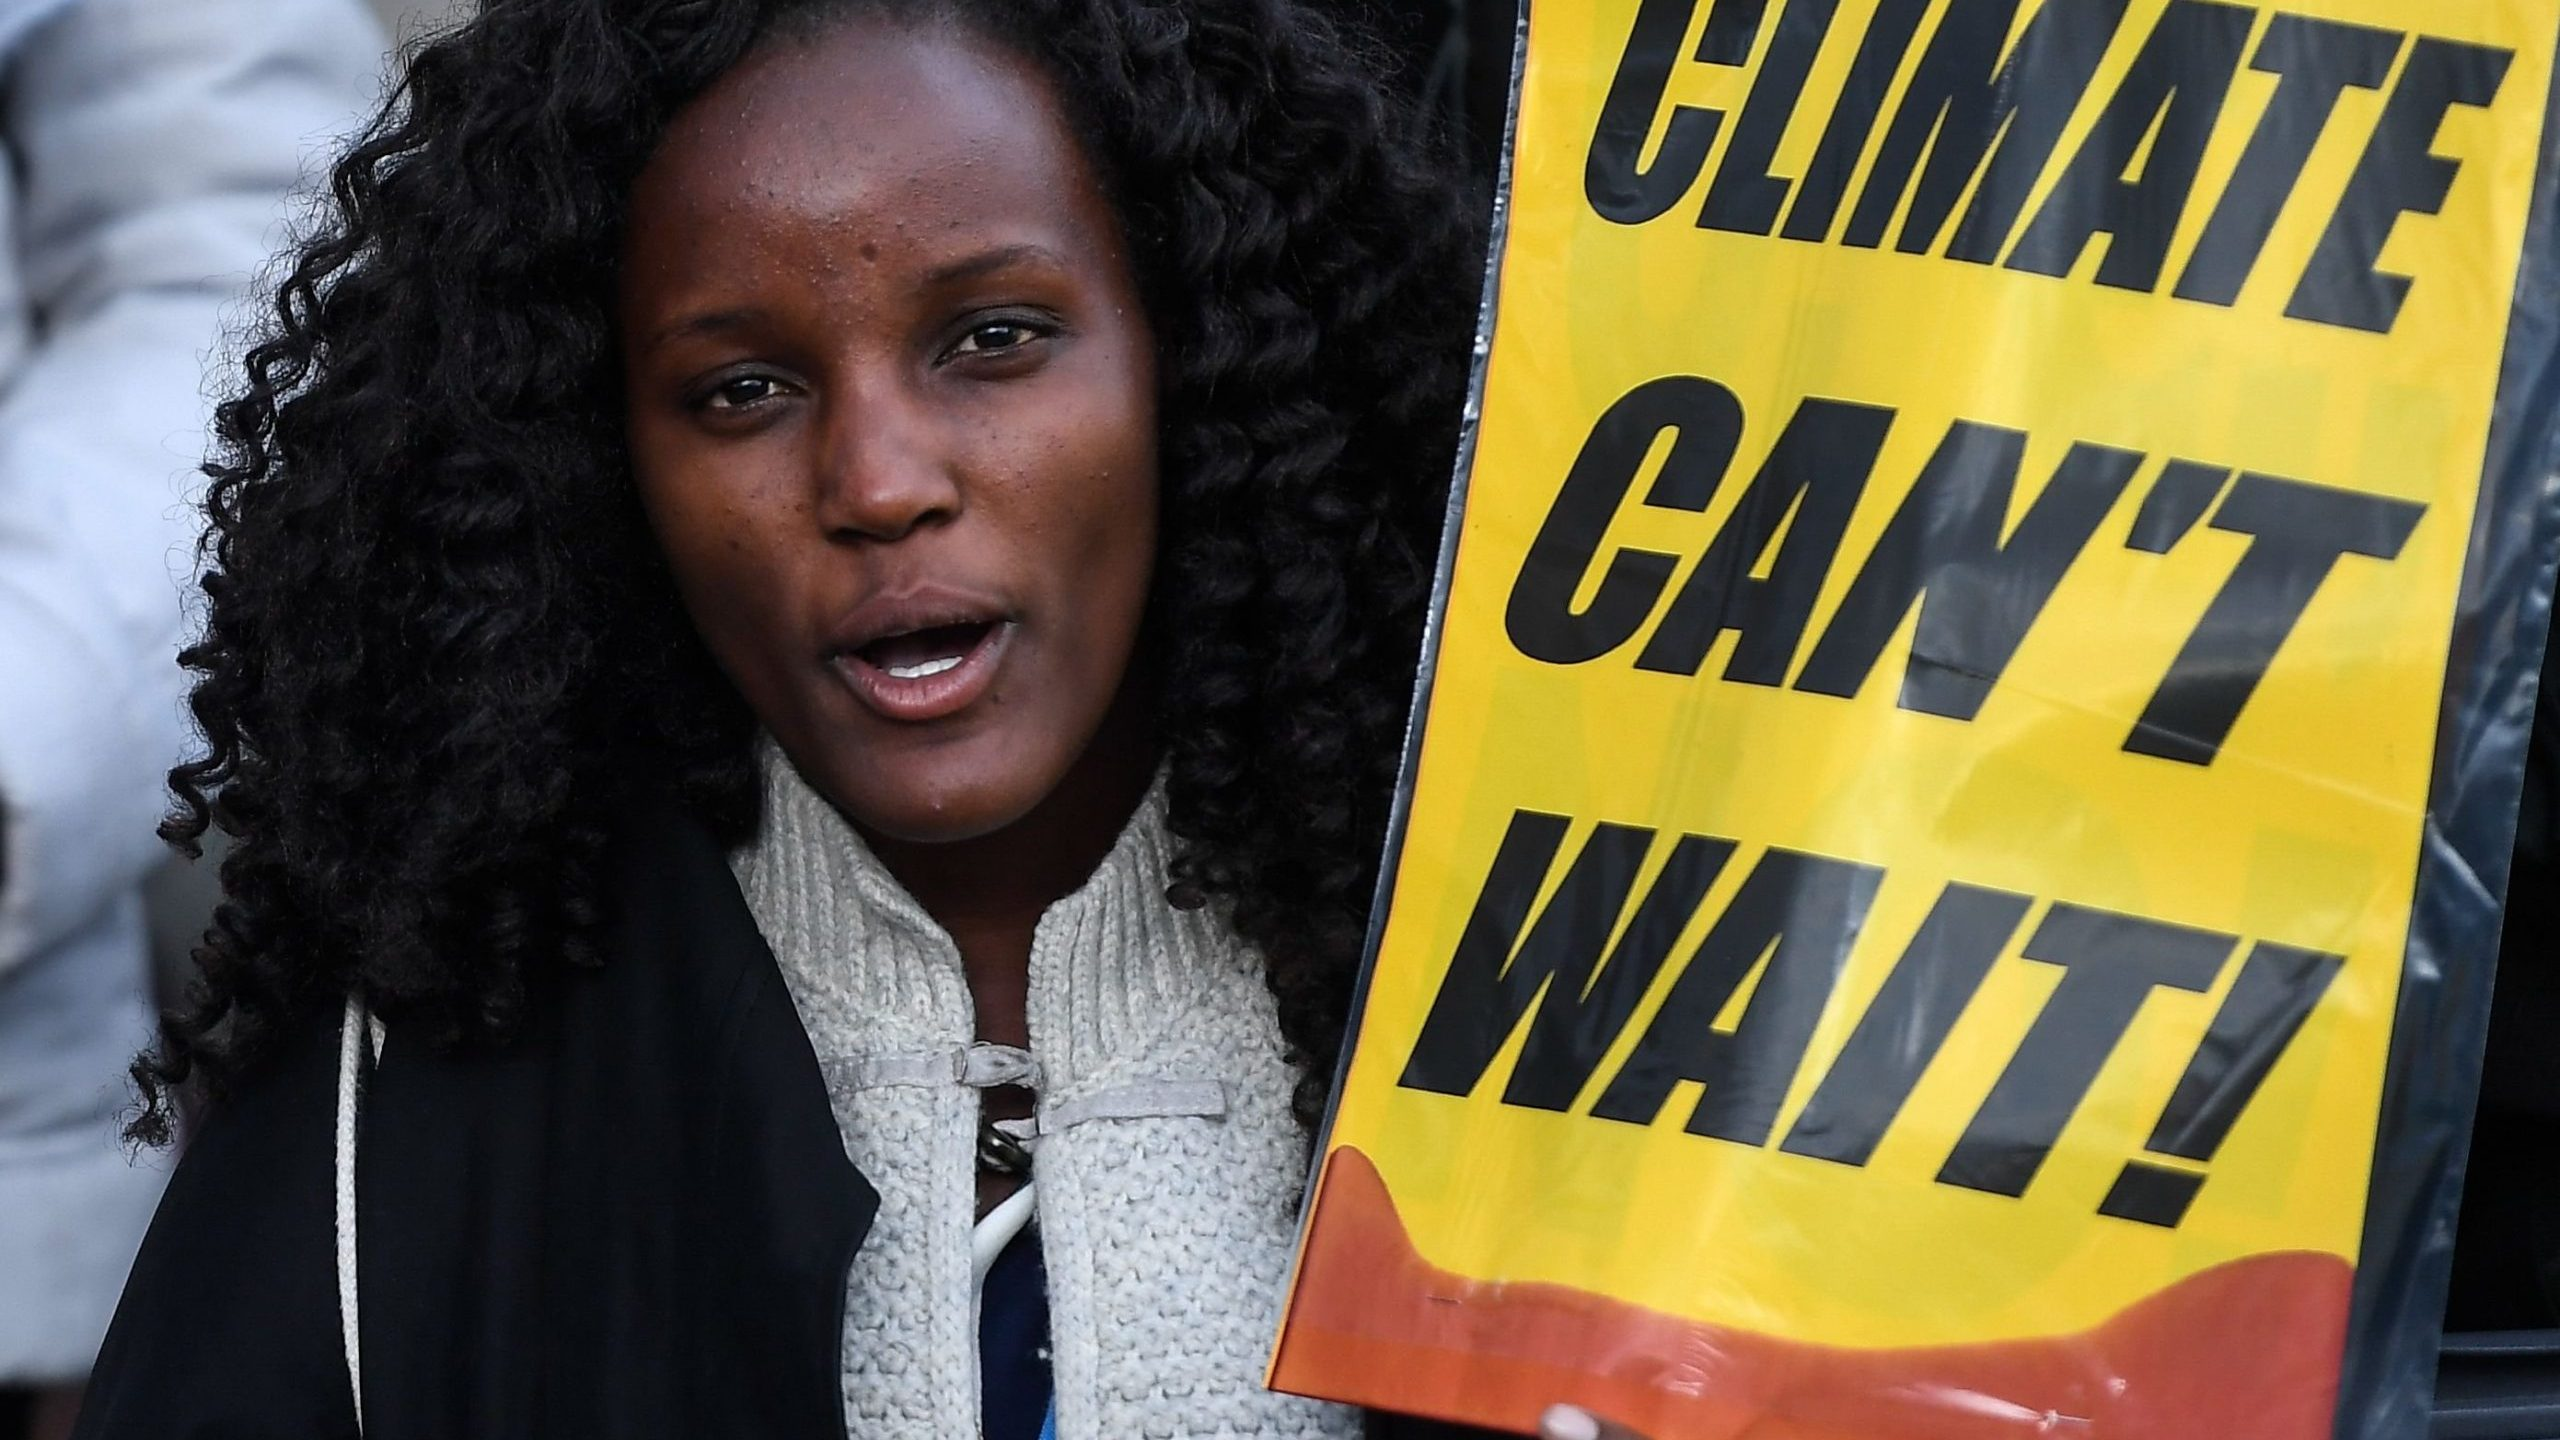 """A demonstrator holds a placard reading """"climate can't wait"""" during a protest outside the UN Climate Change Conference in Madrid, Spain, on Dec. 13, 2019. (Credit: Pierre-Philippe Marcou / AFP / Getty Images)"""